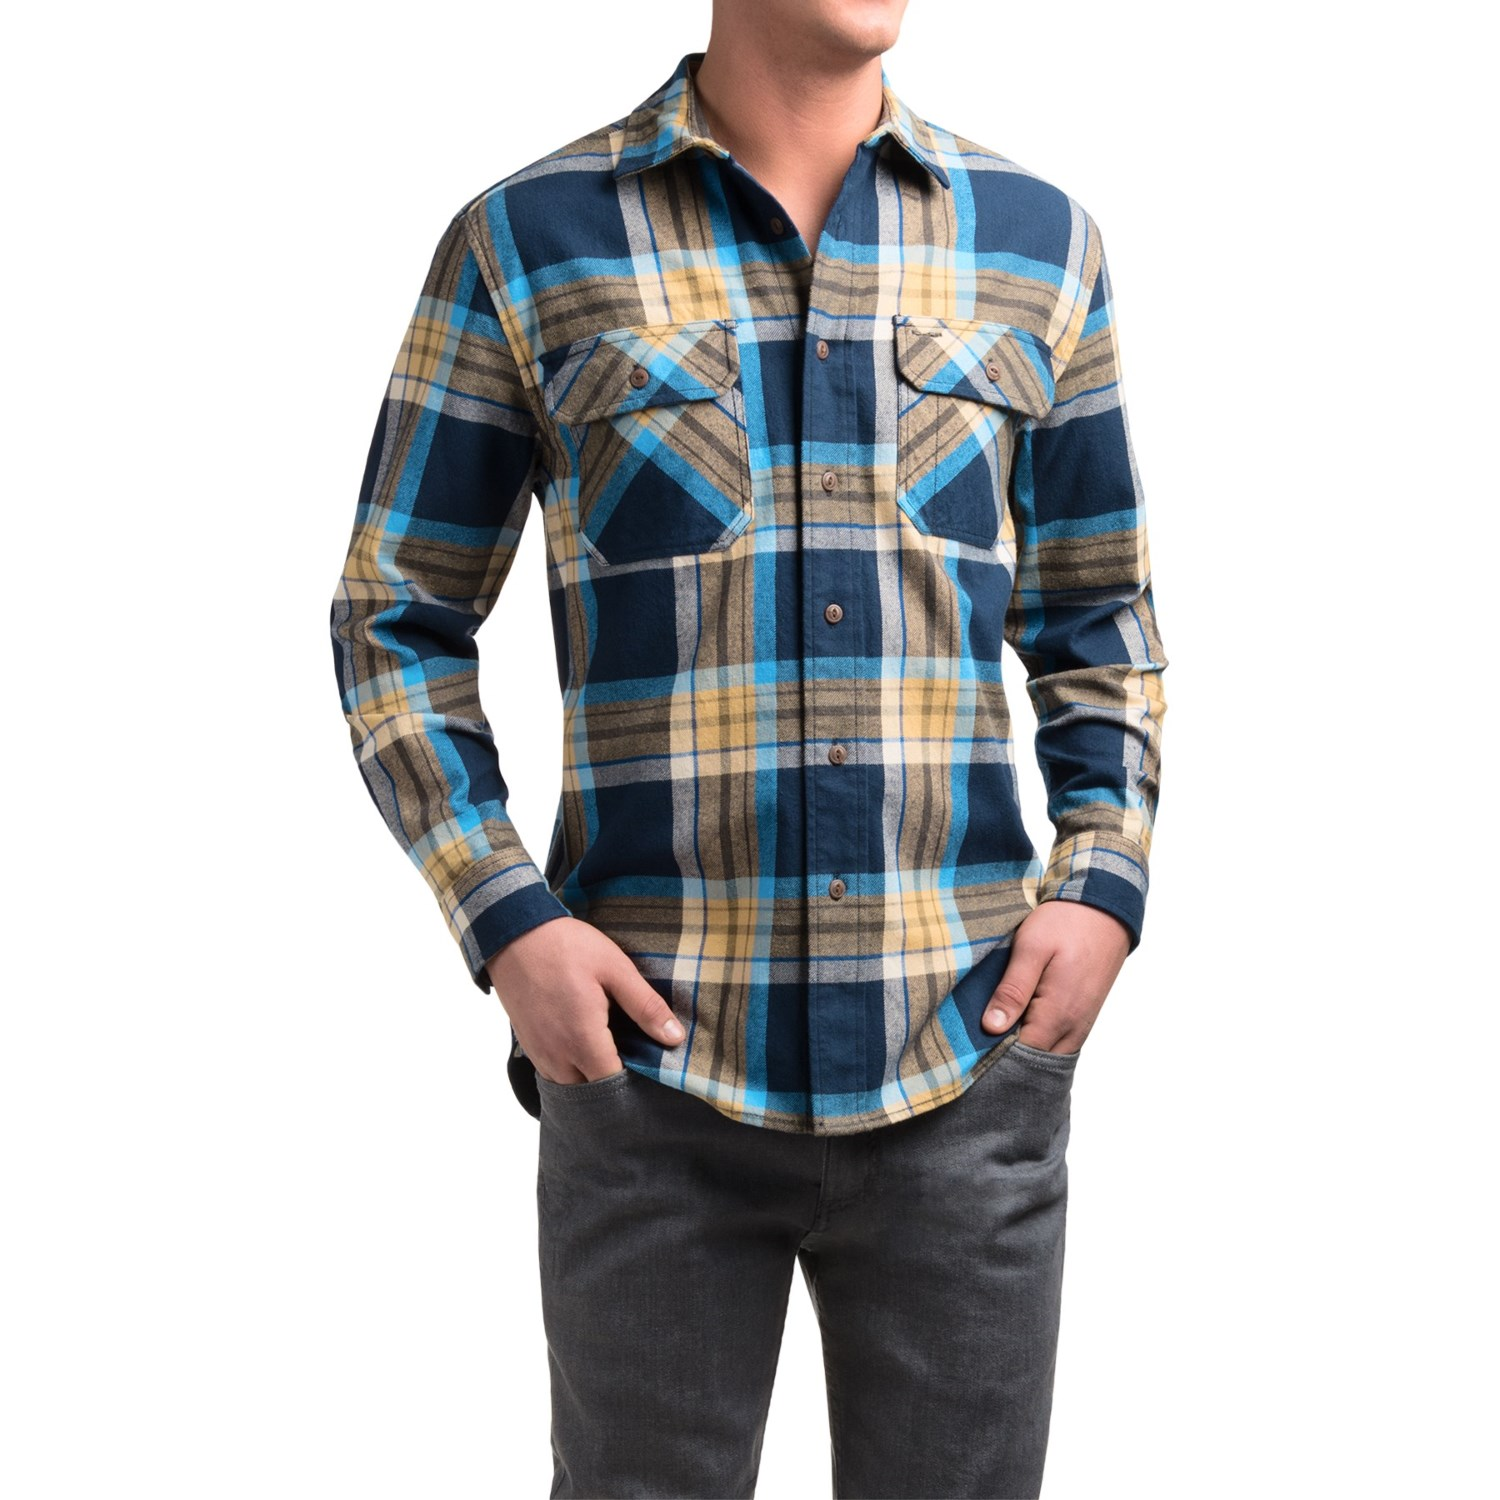 Rangeley Flannel Shirt Long Sleeve Slightly Fitted Plaid Men's Reg. Men's Flannel, Chamois and Lined Shirts Shop autoebookj1.ga for the unbeatable comfort of our Men's flannel- and fleece-lined shirts. Our flannel shirts are made from high-quality Portuguese flannel, expertly brushed for softness.